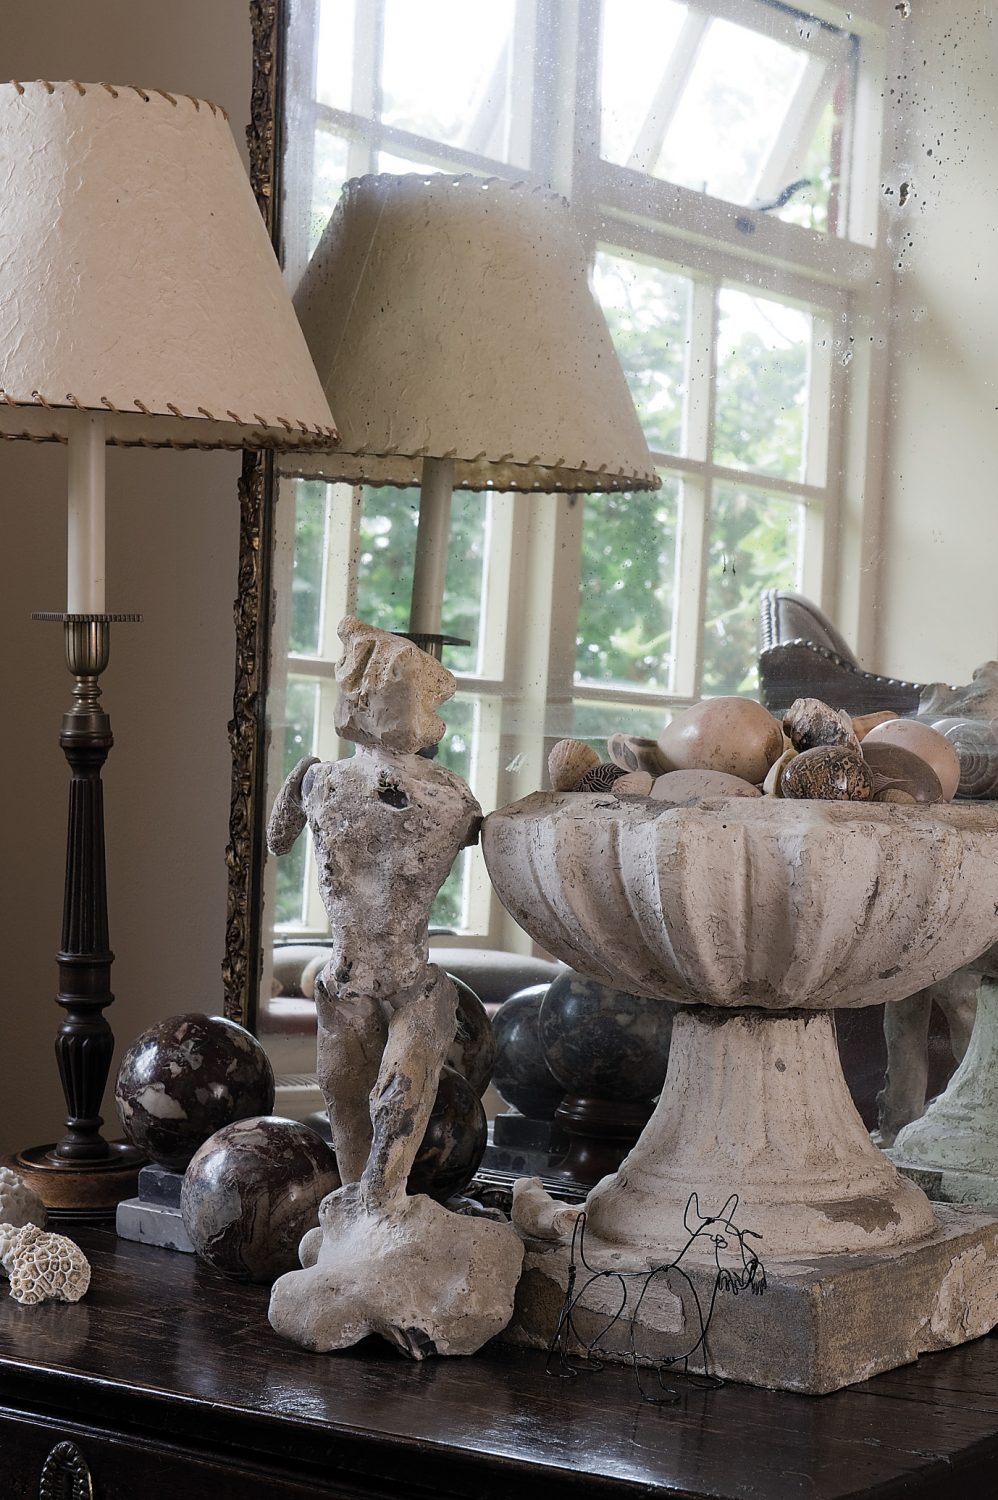 Fascinating collections of trinkets and sculptures adorn surfaces throughout the house